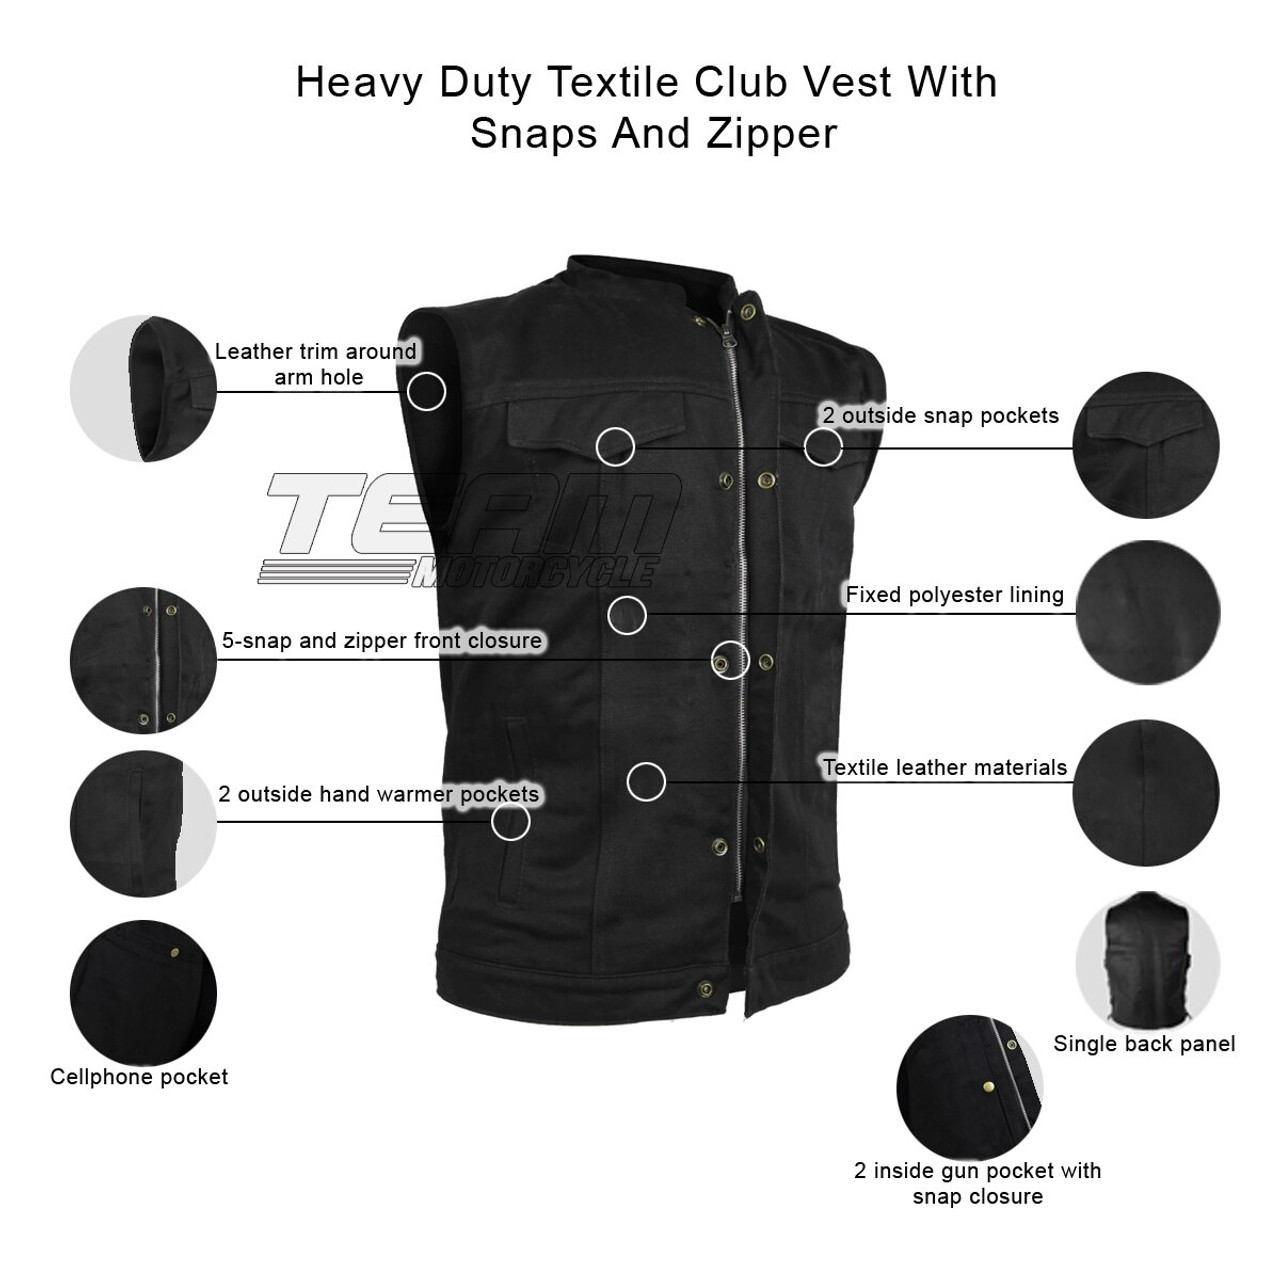 Collarless Biker Apparel SOA Mens Black Leather Motorcycle Vest W//Gun Pockets Side Lace Genuine Cowhide Leather Collar Collar, Small Hidden Zipper /& Snaps Patch Access Lining